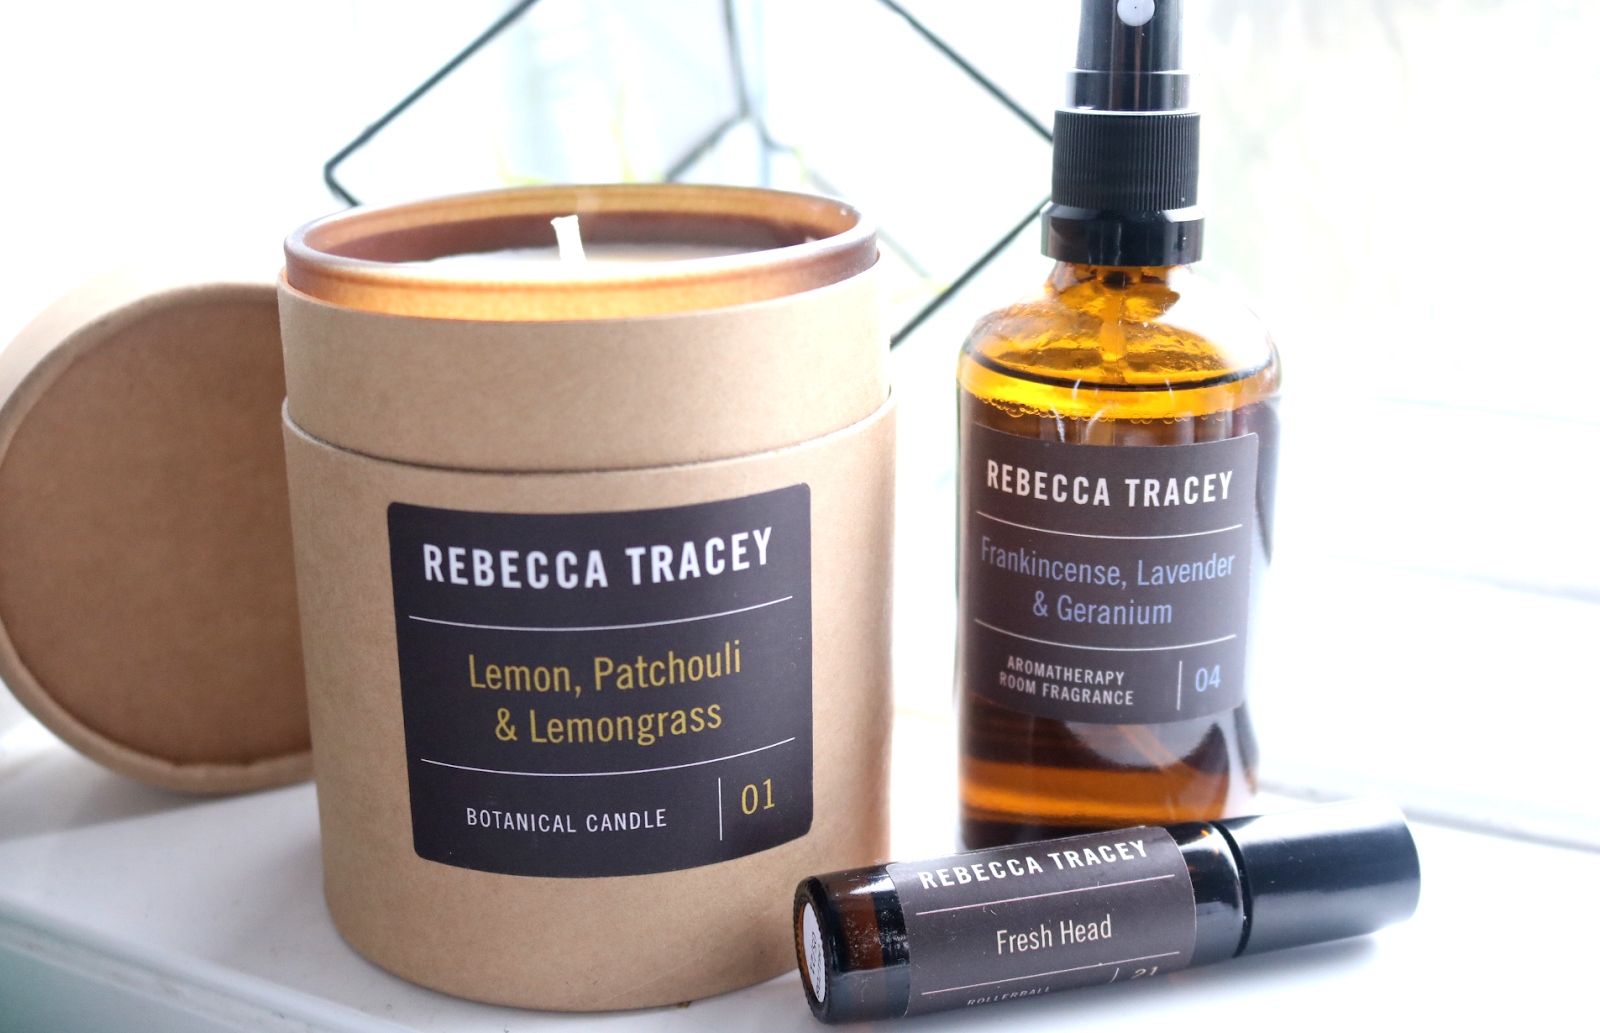 Rebecca Tracey - Handmade Aromatherapy - The Perfumed Workshop